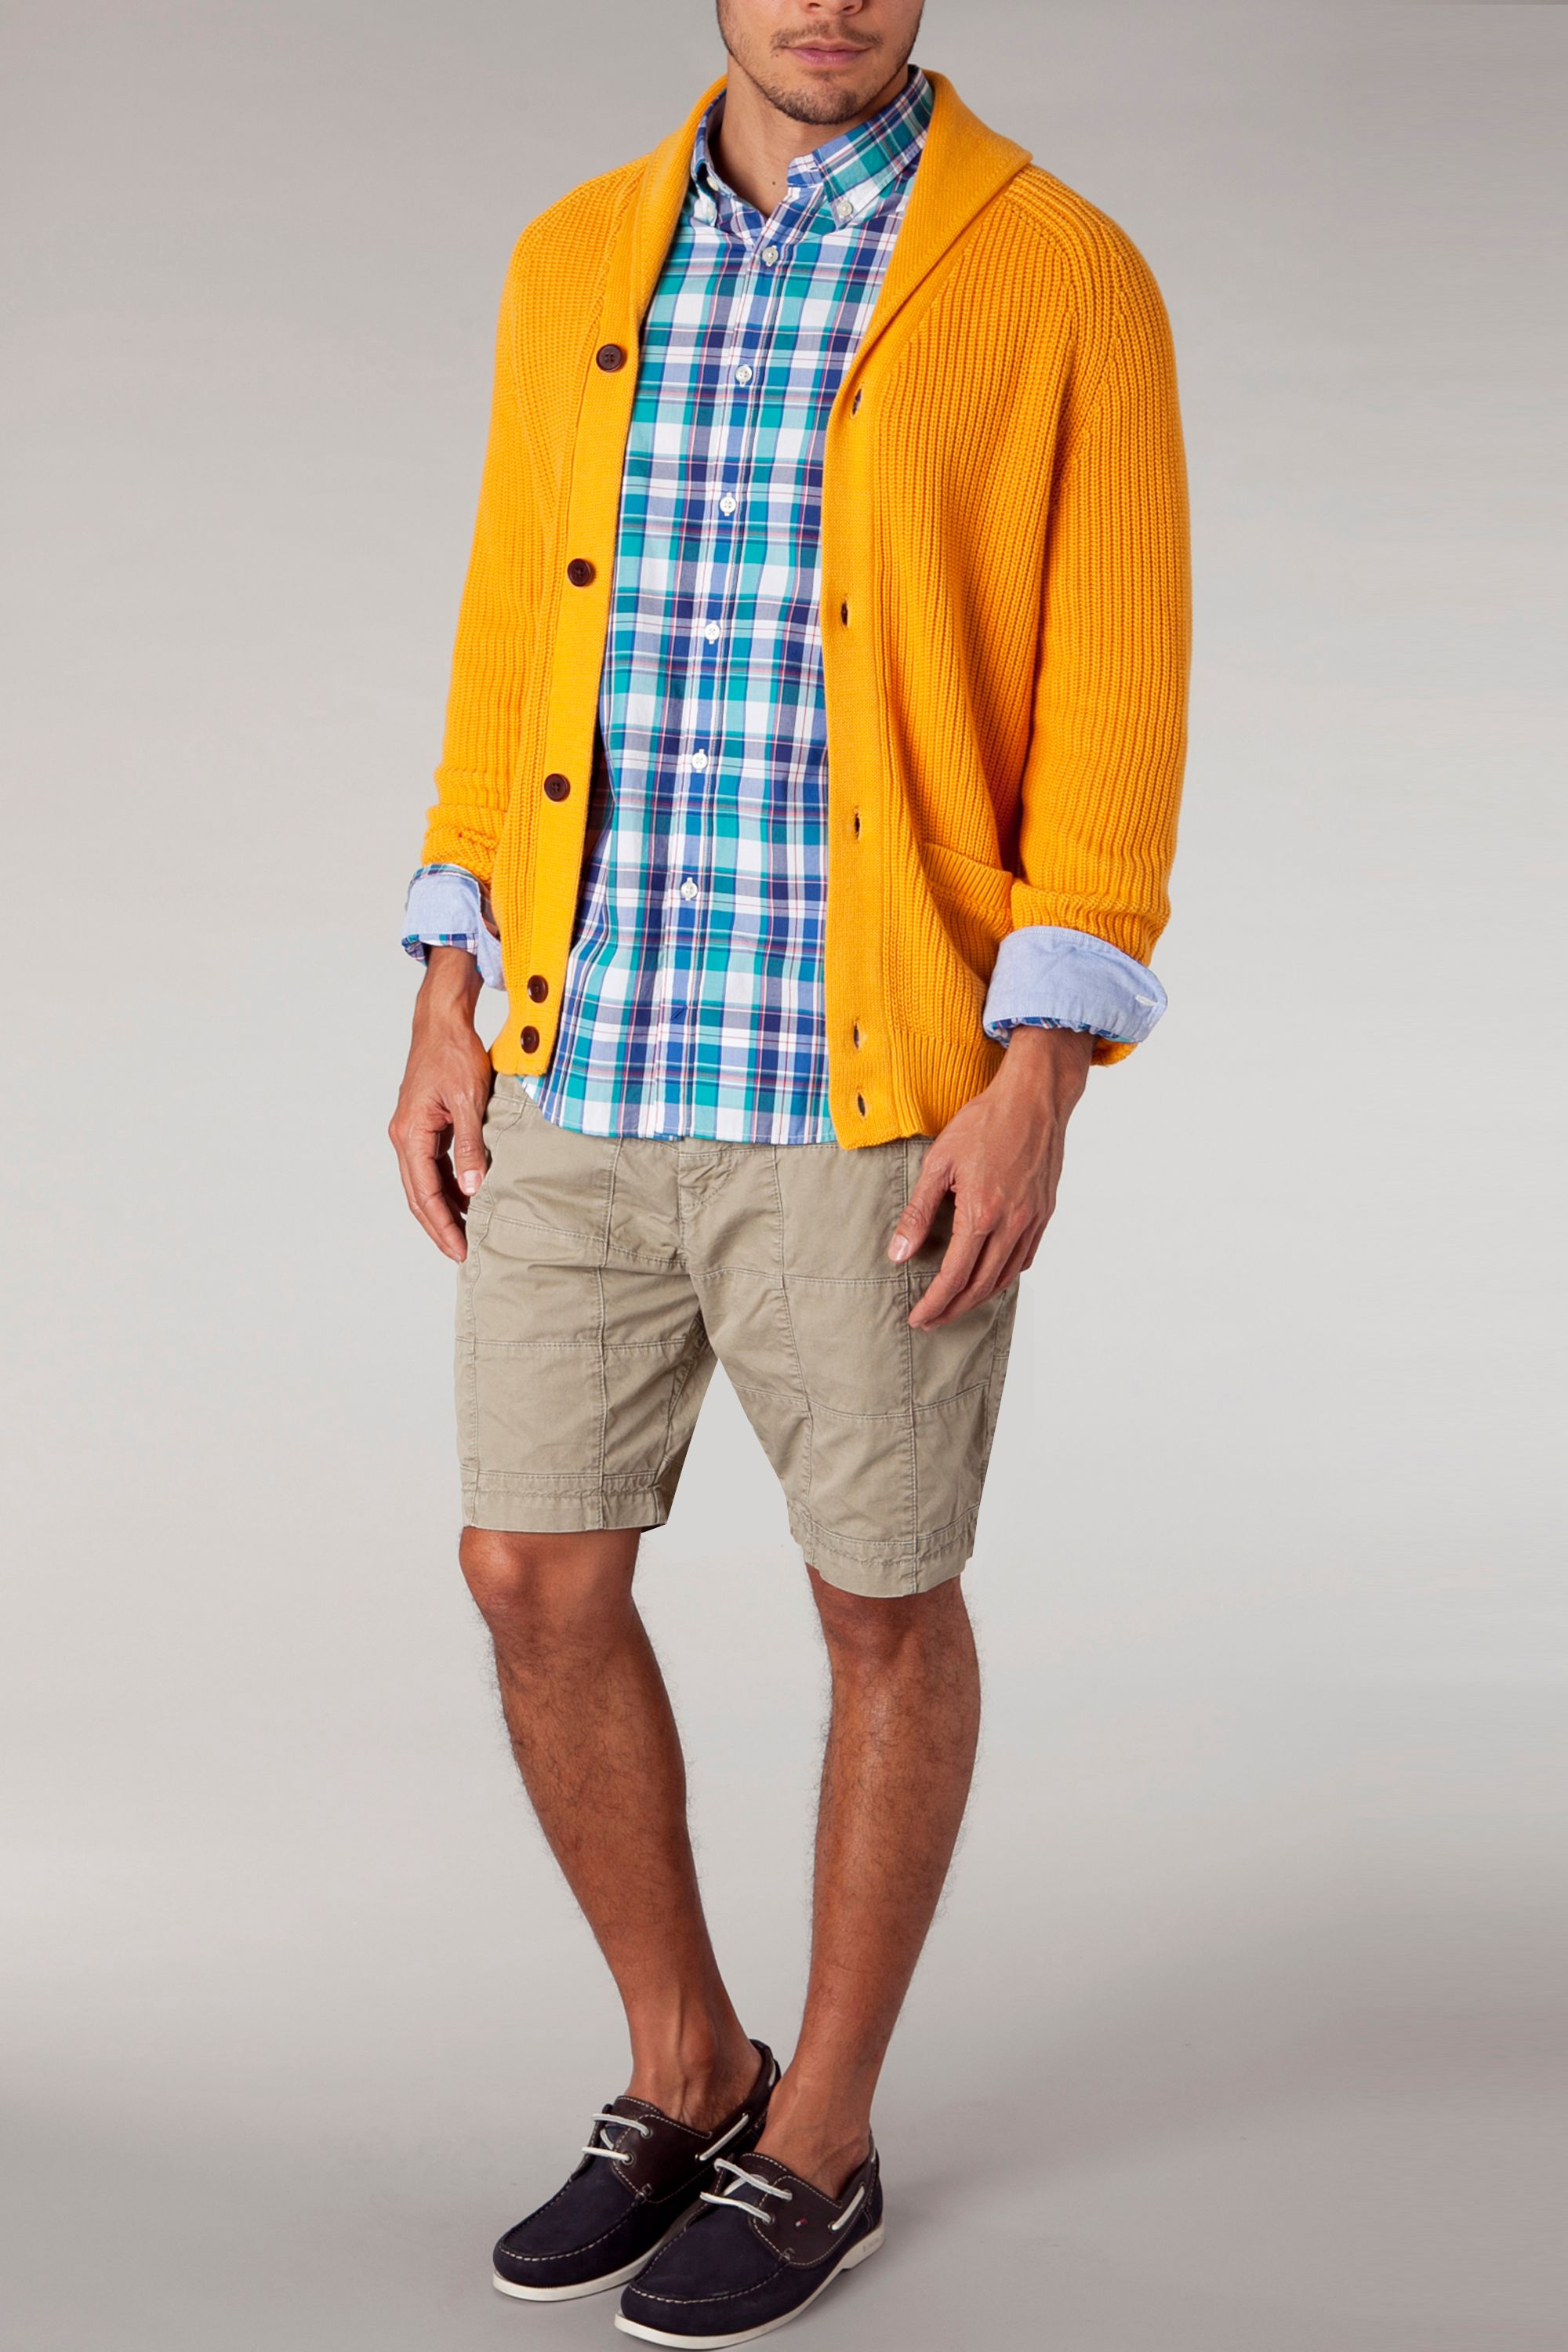 Addison shawl cardigan